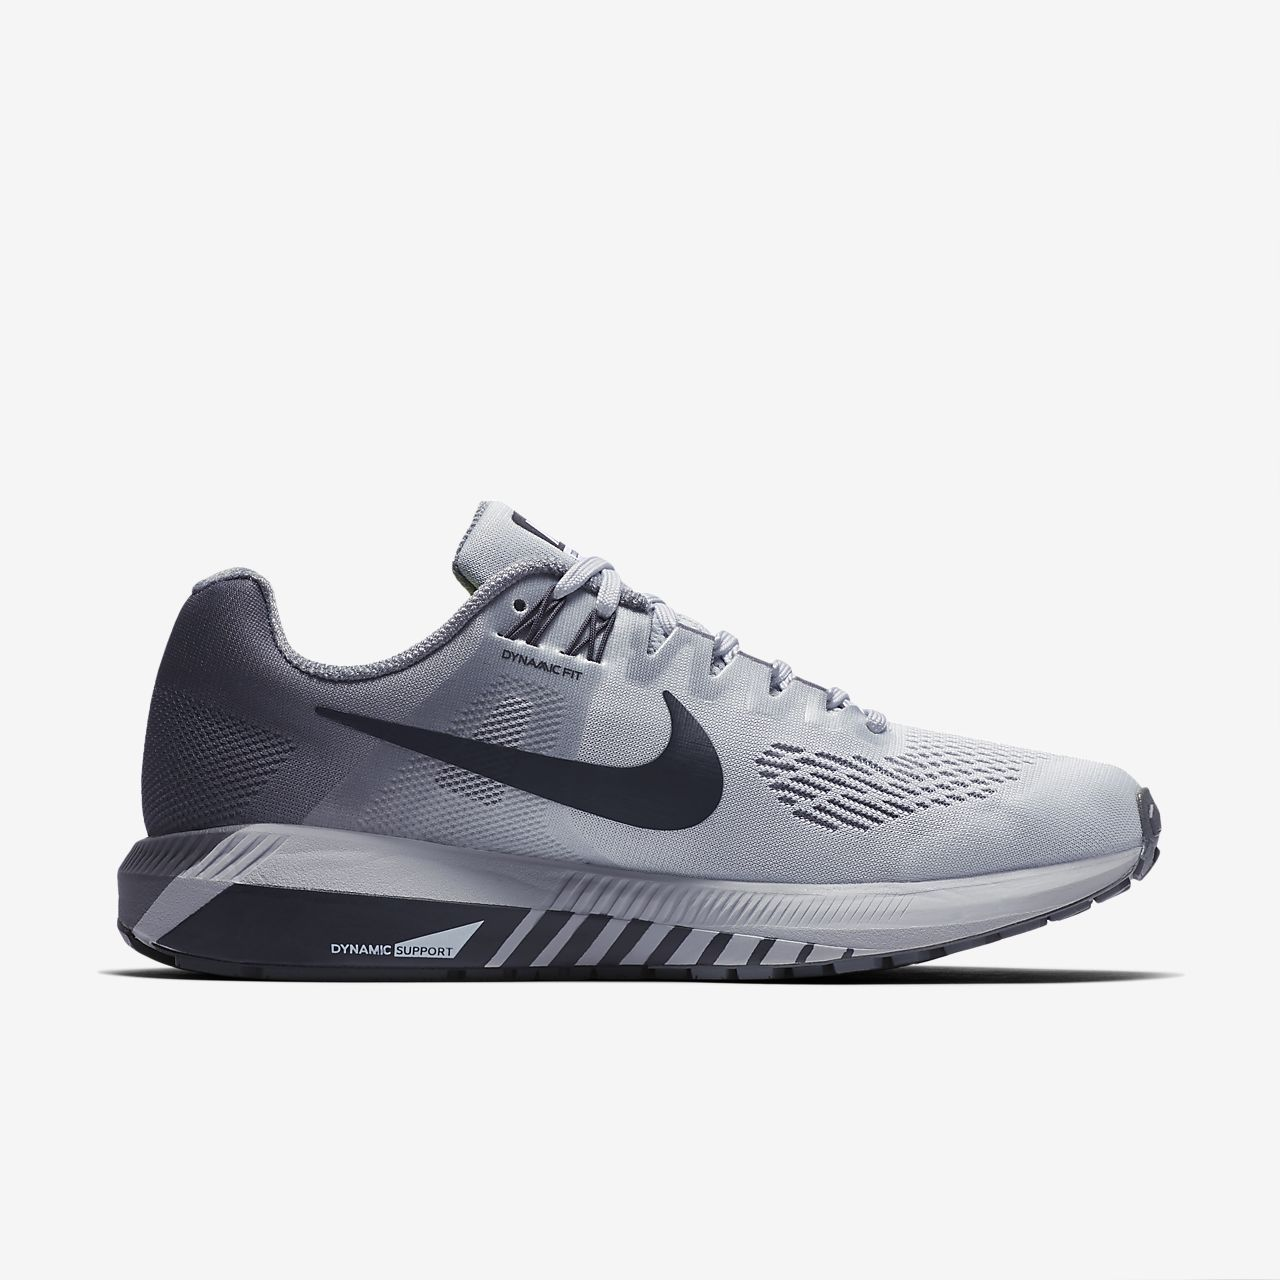 Nike Air Zoom Structure 21 Women S Running Shoe Lighter And Stronger Than The Previous Version The Trending Womens Shoes Athletic Shoes Outfit Trending Shoes